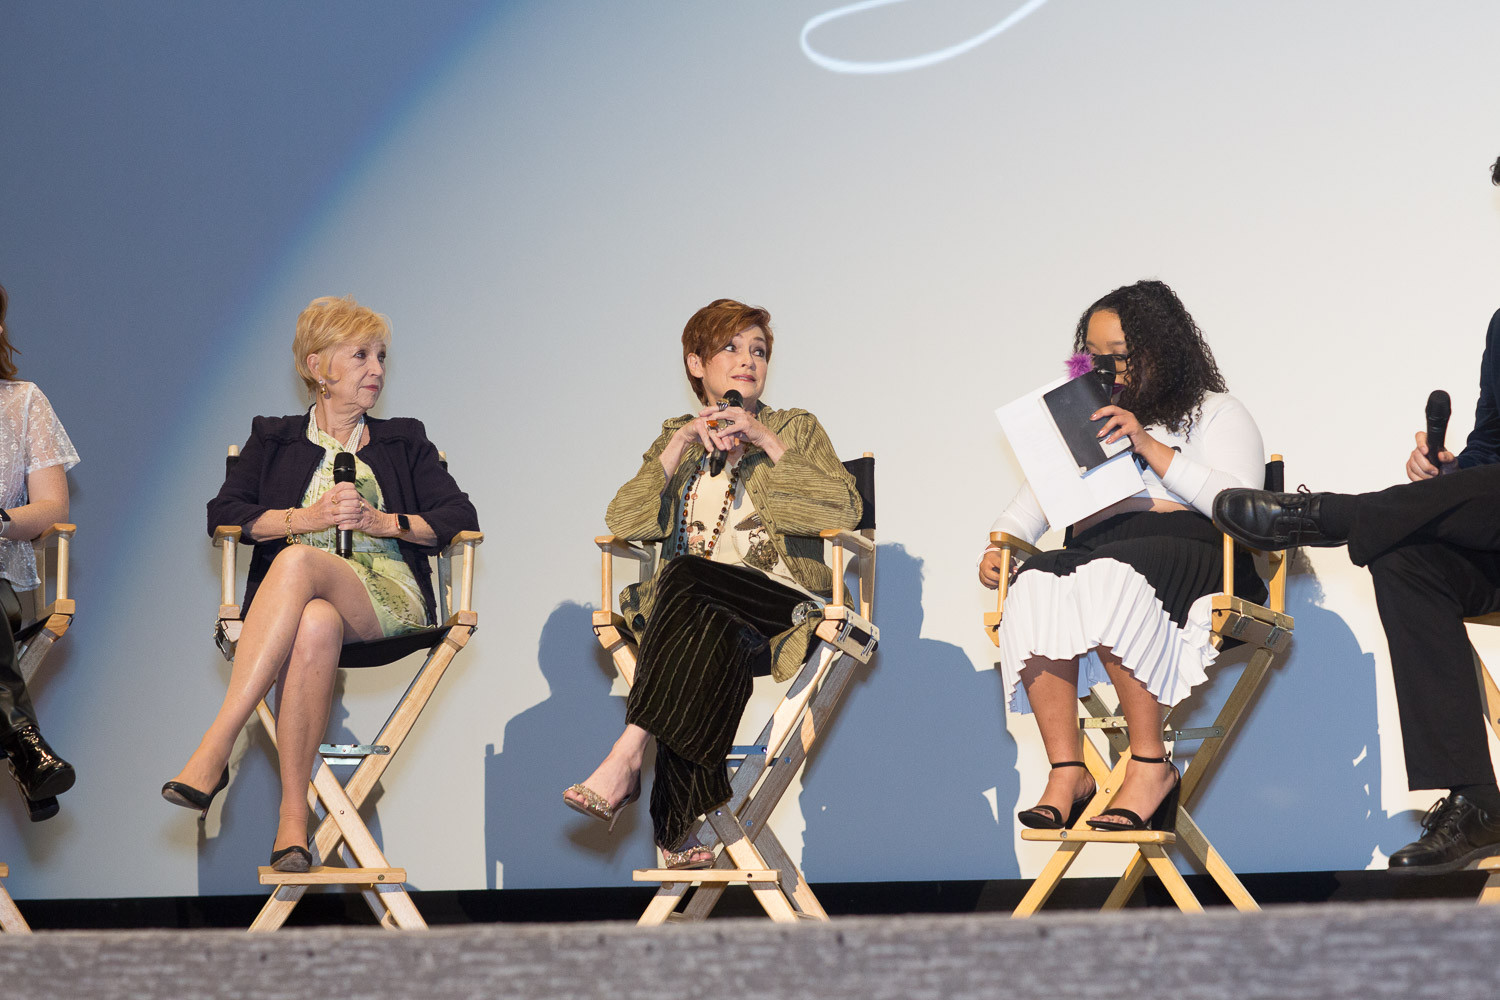 Actress Carolyn Hennesy during Q&A